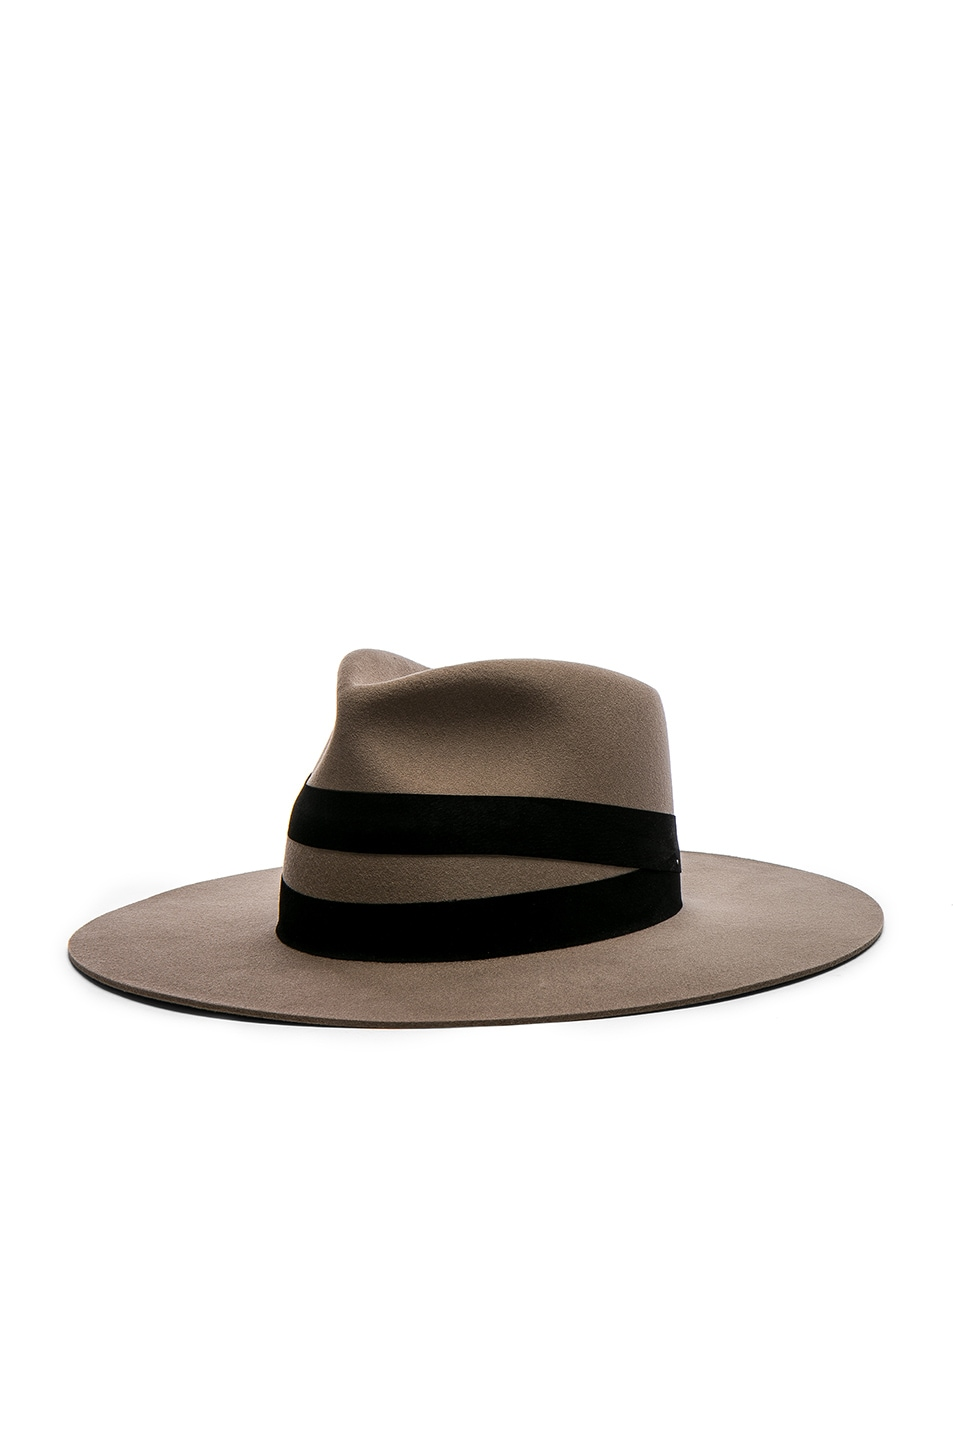 Image 2 of Janessa Leone Un Fedora Hat in Dark Sand